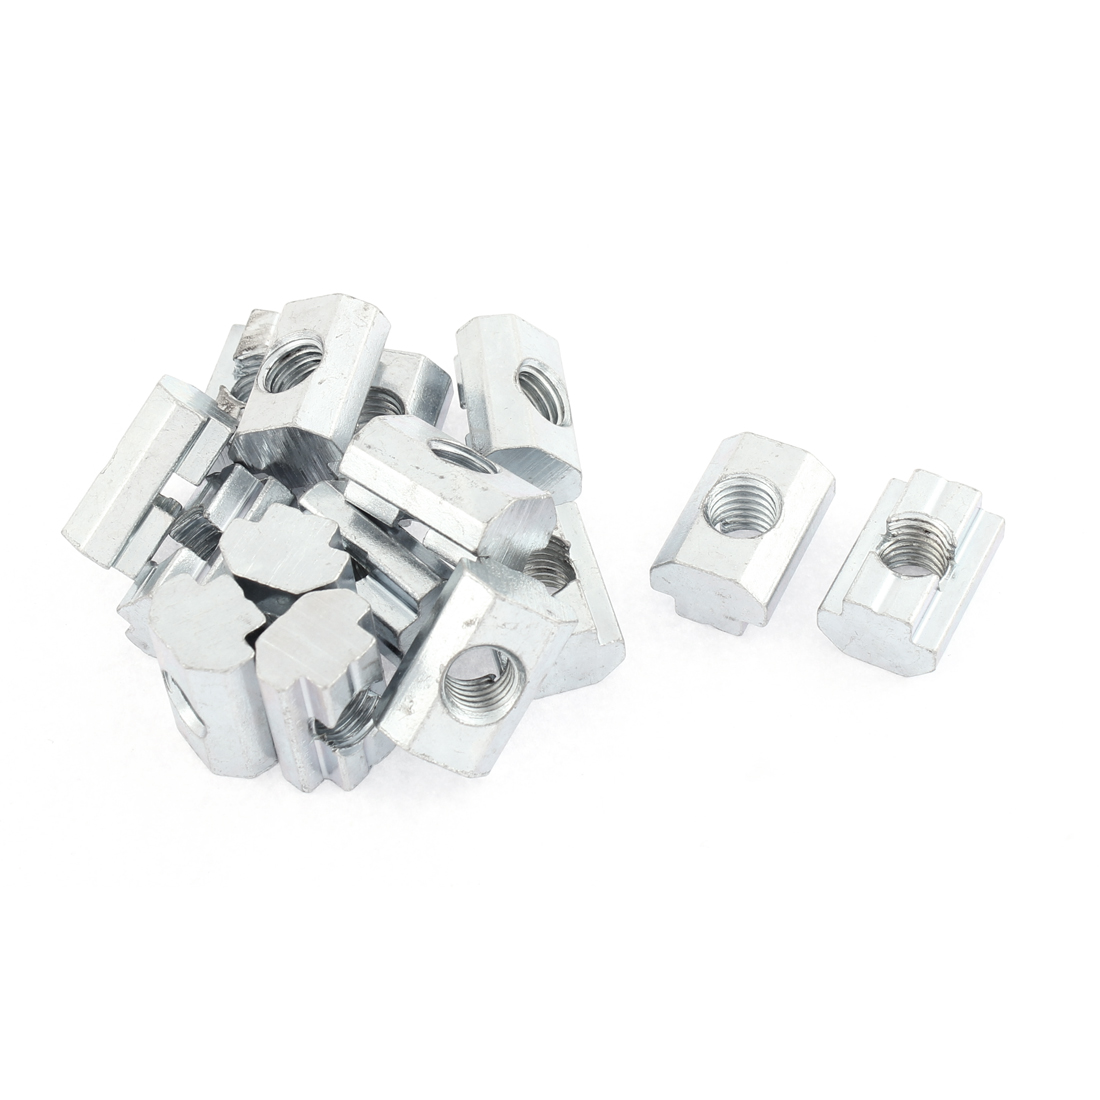 M8 Metal T-slot Nut Sliding Block Slot Nuts Silver Tone 15pcs